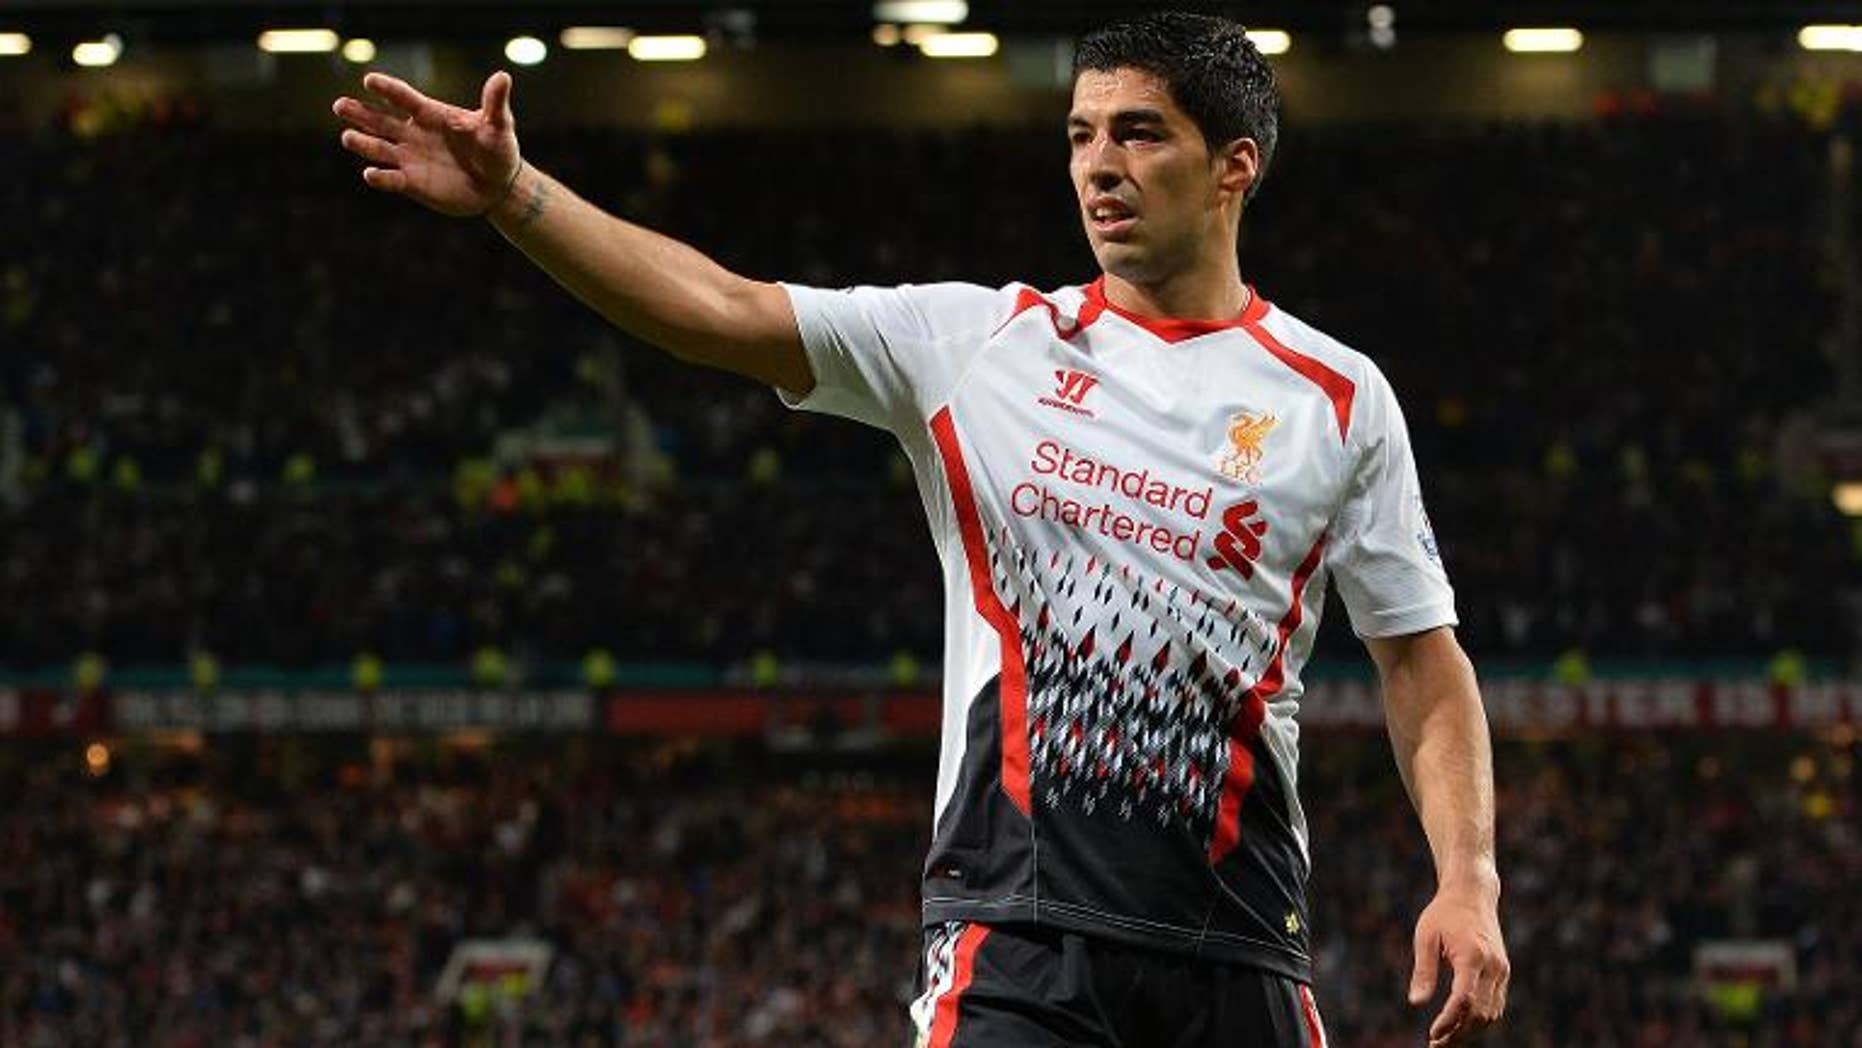 Liverpool's Uruguayan forward Luis Suarez reacts during the League Cup football match between Manchester United and Liverpool at Old Trafford in Manchester on September 25, 2013. Manchester United won 1-0.